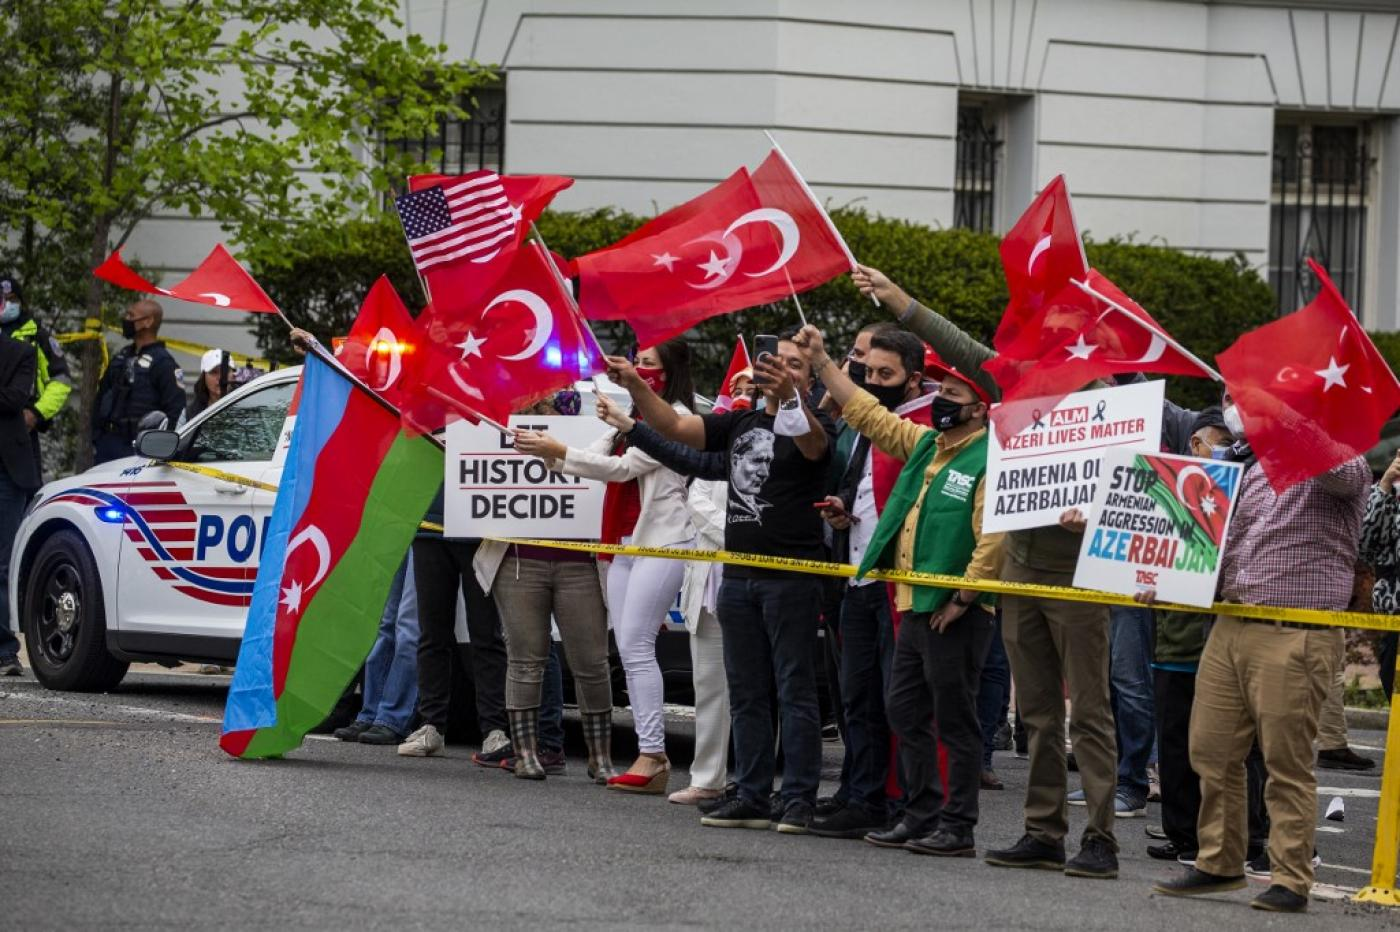 Turkey says it will respond in time to 'outrageous' US genocide statement